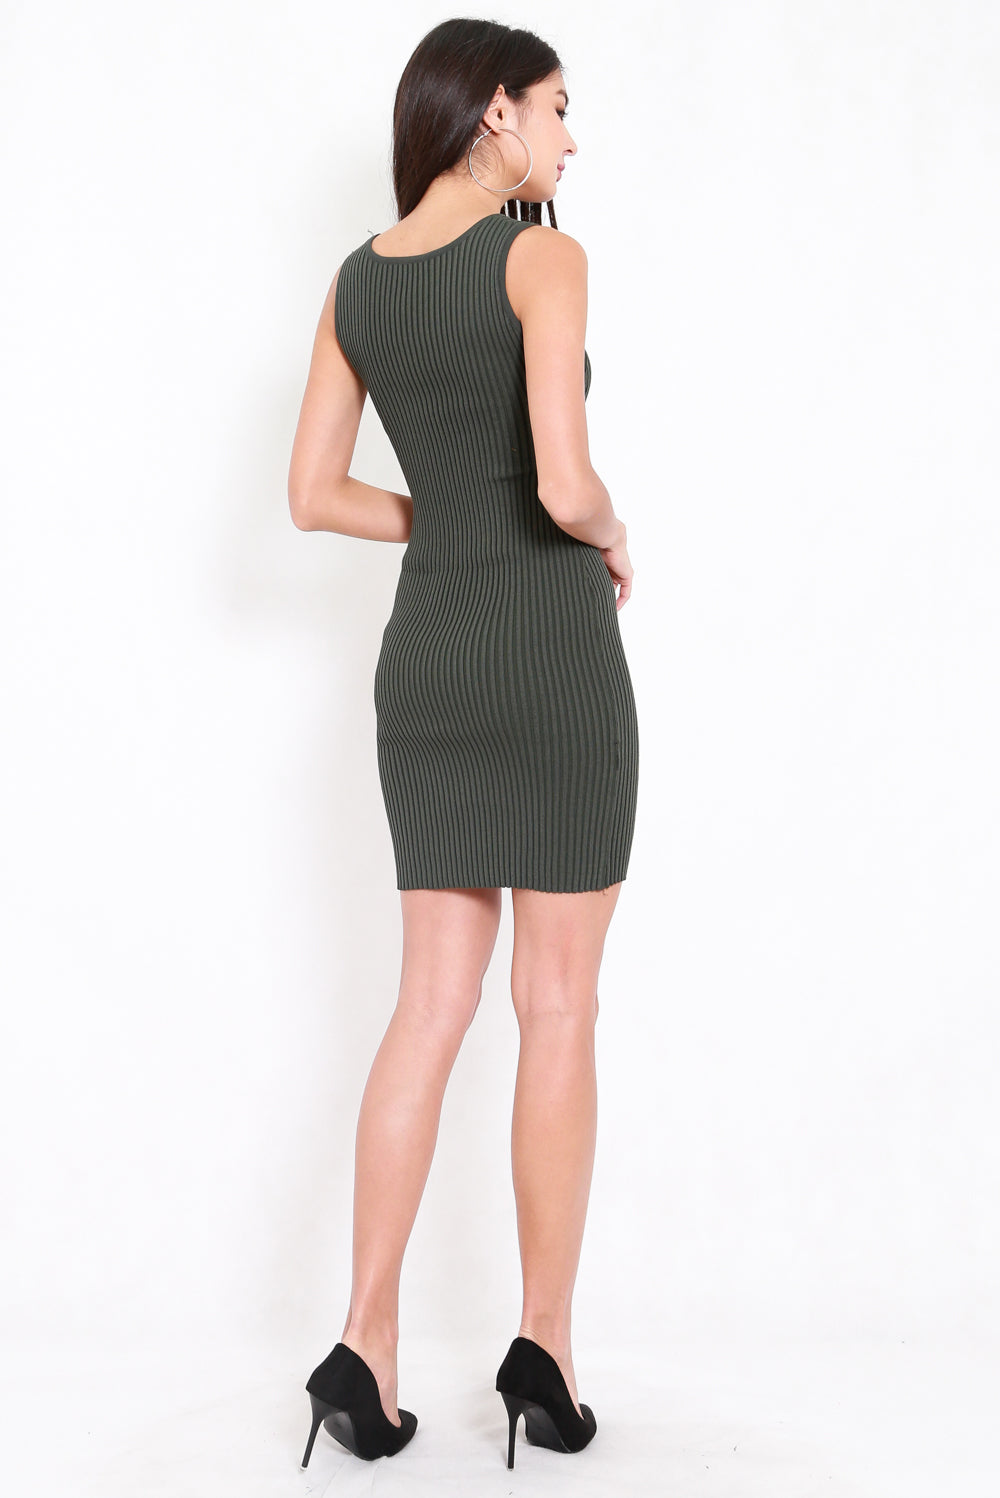 Scoop Neck Midi Knit Dress (Olive)